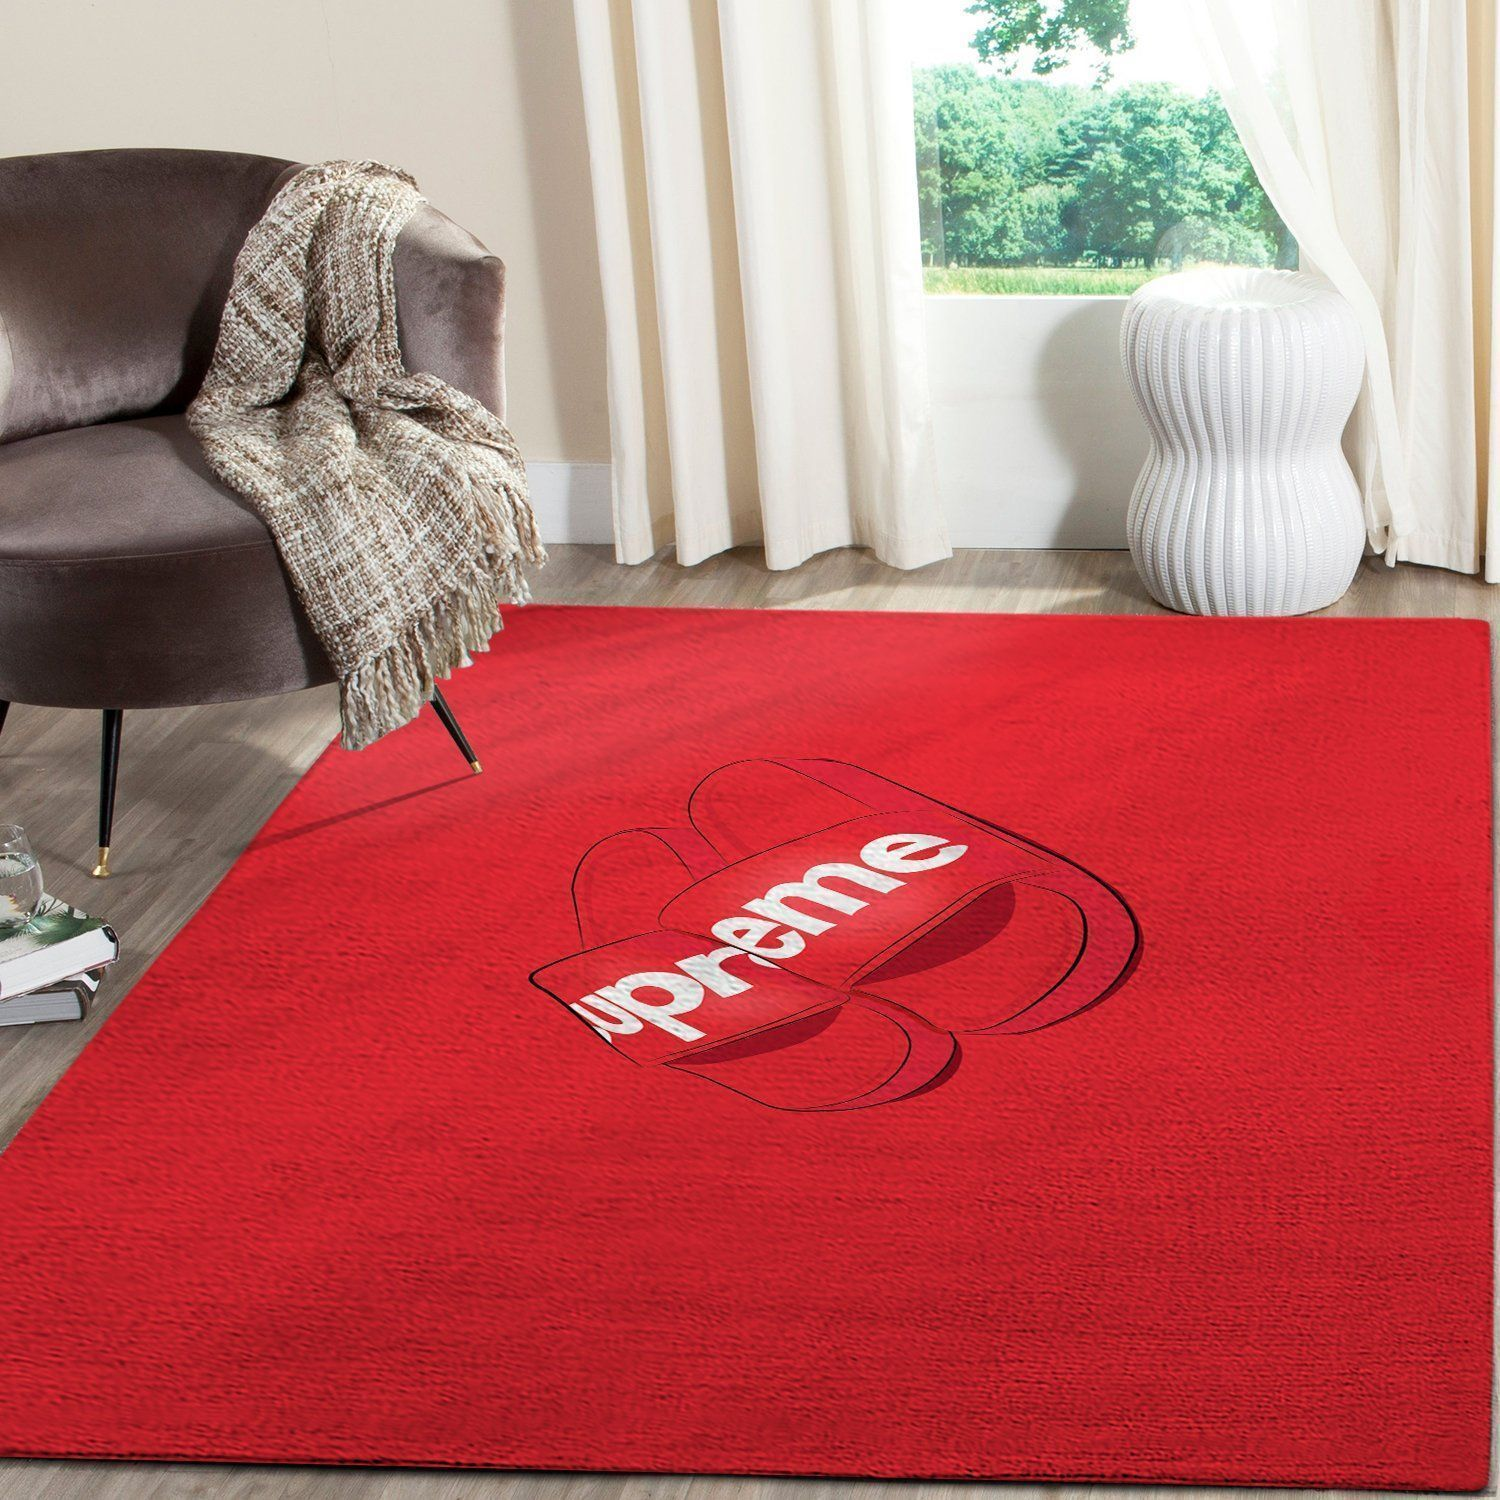 Supreme Area Rug, Red Hypebeast Carpet, Luxurious Fashion Brand Logo Living Room  Rugs, Floor Decor 081127